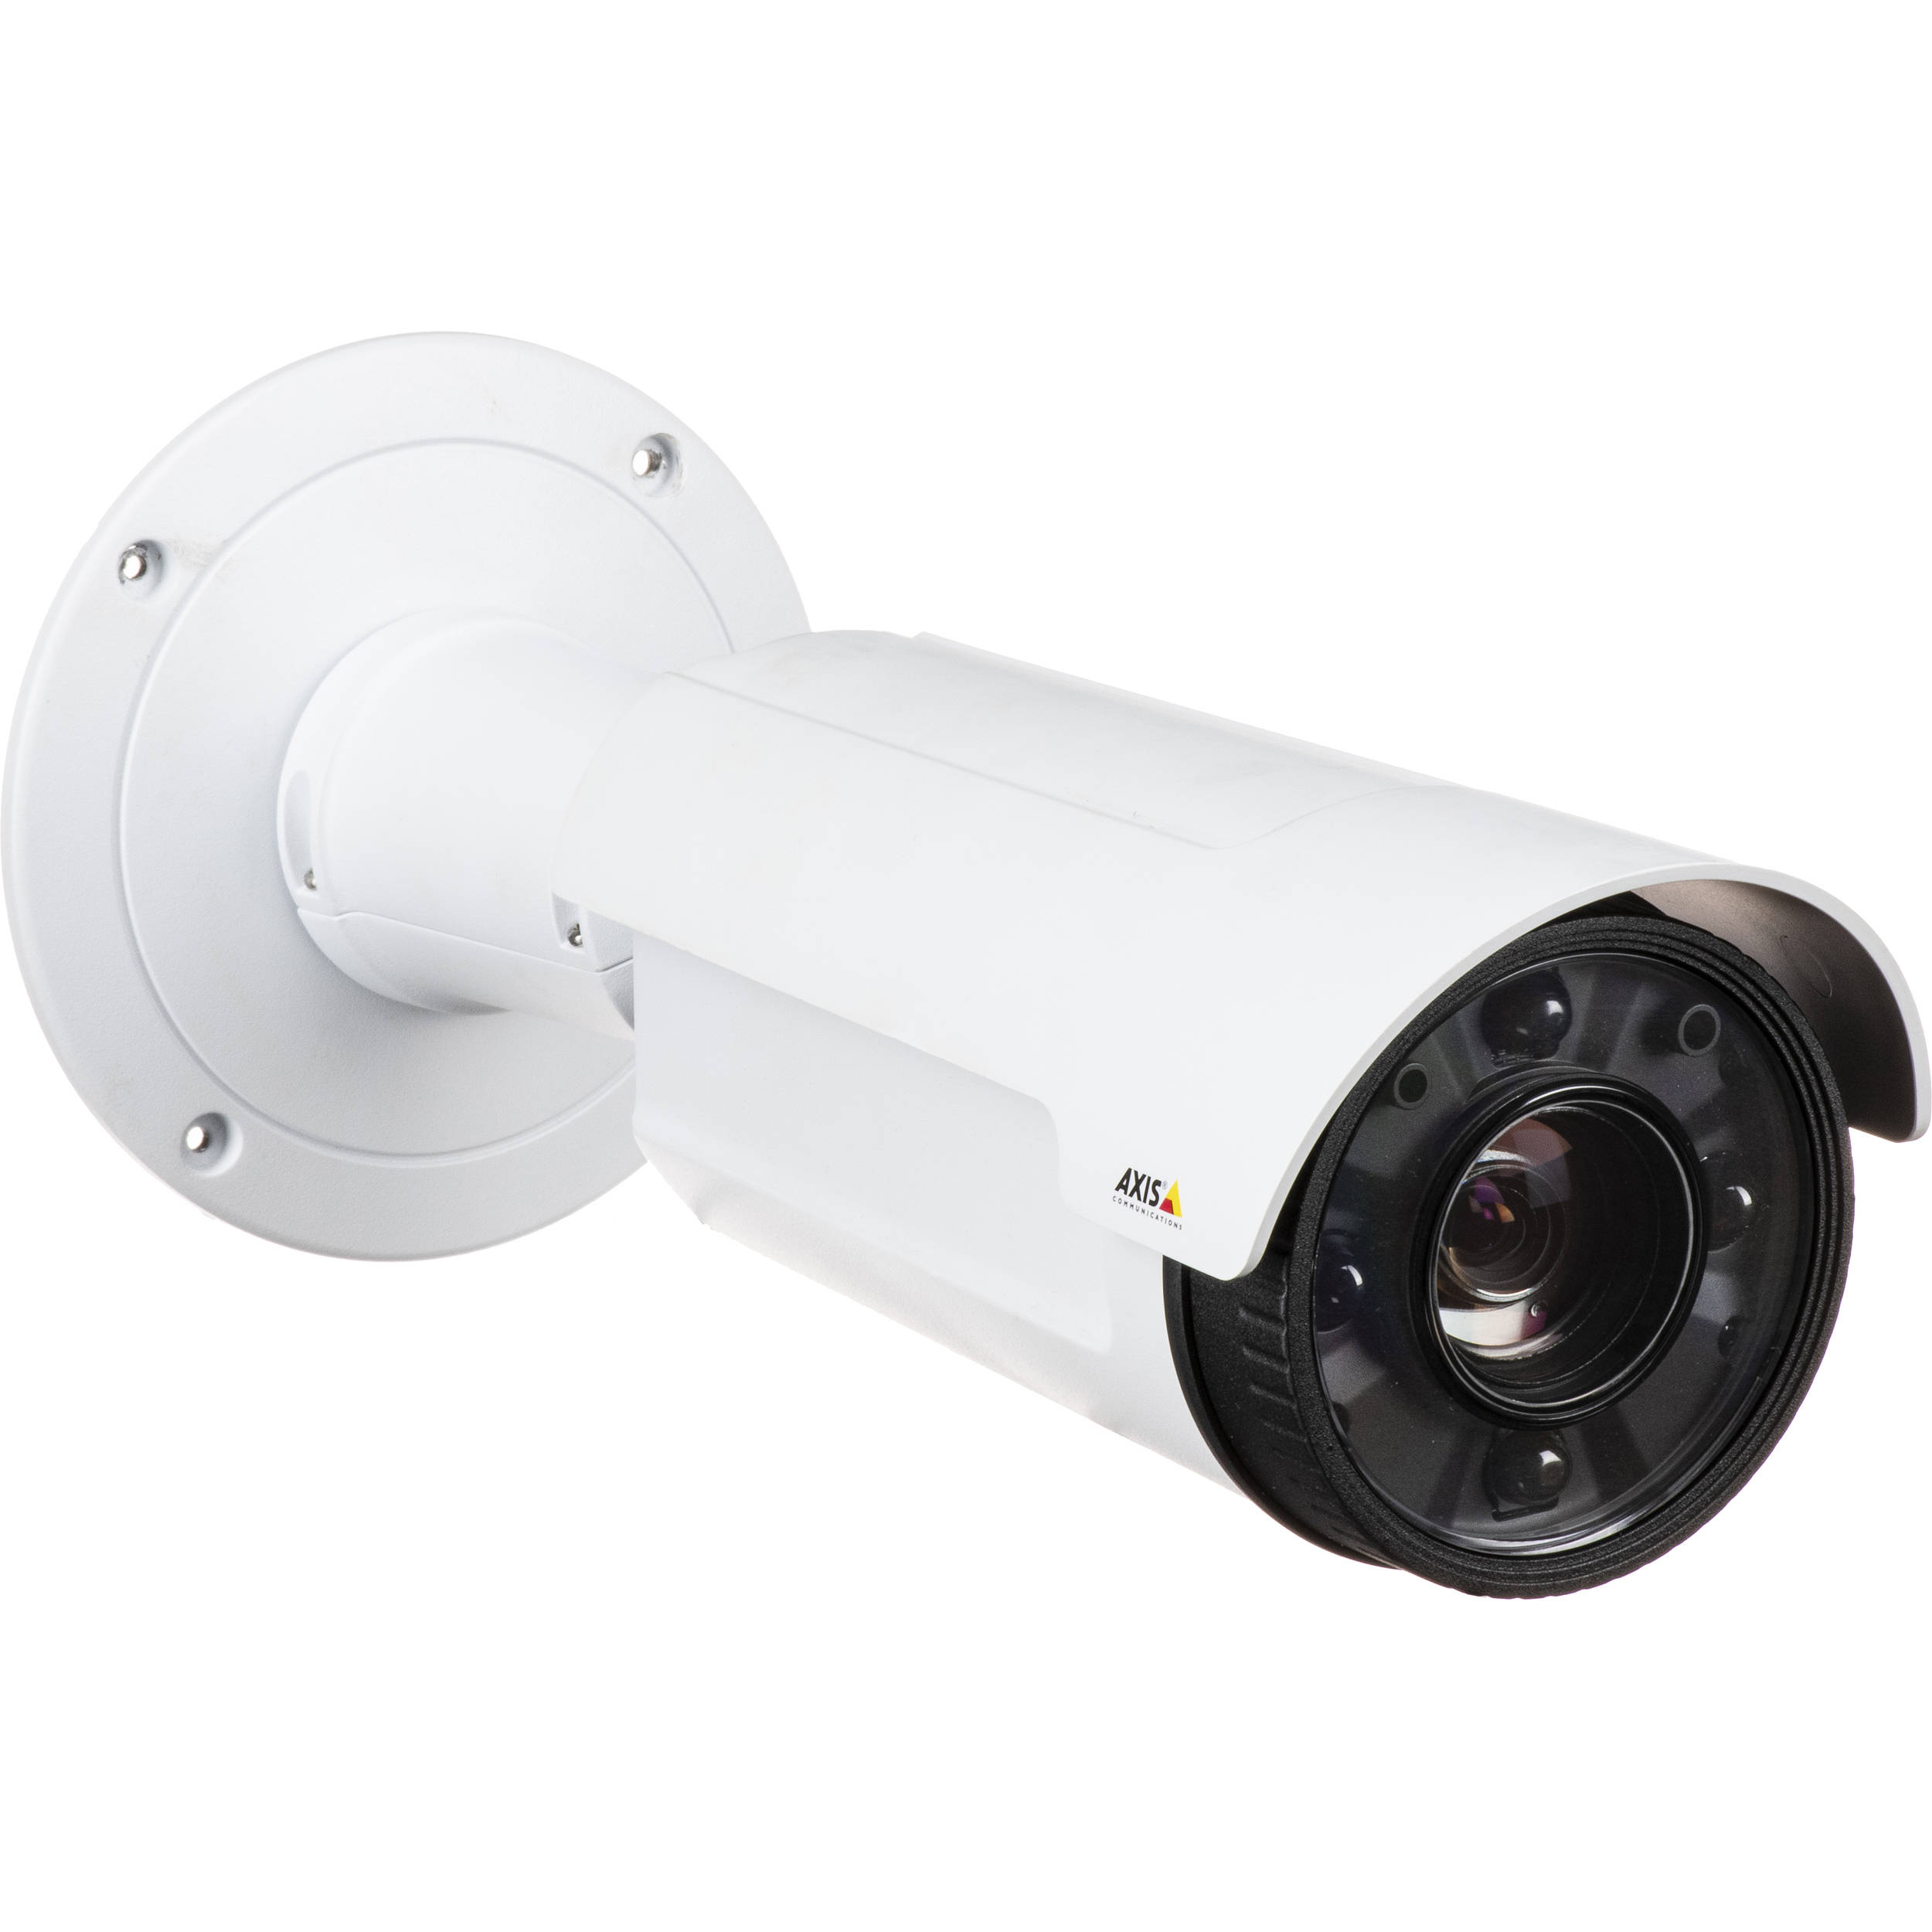 AXIS Q1765-LE Network Camera Drivers (2019)